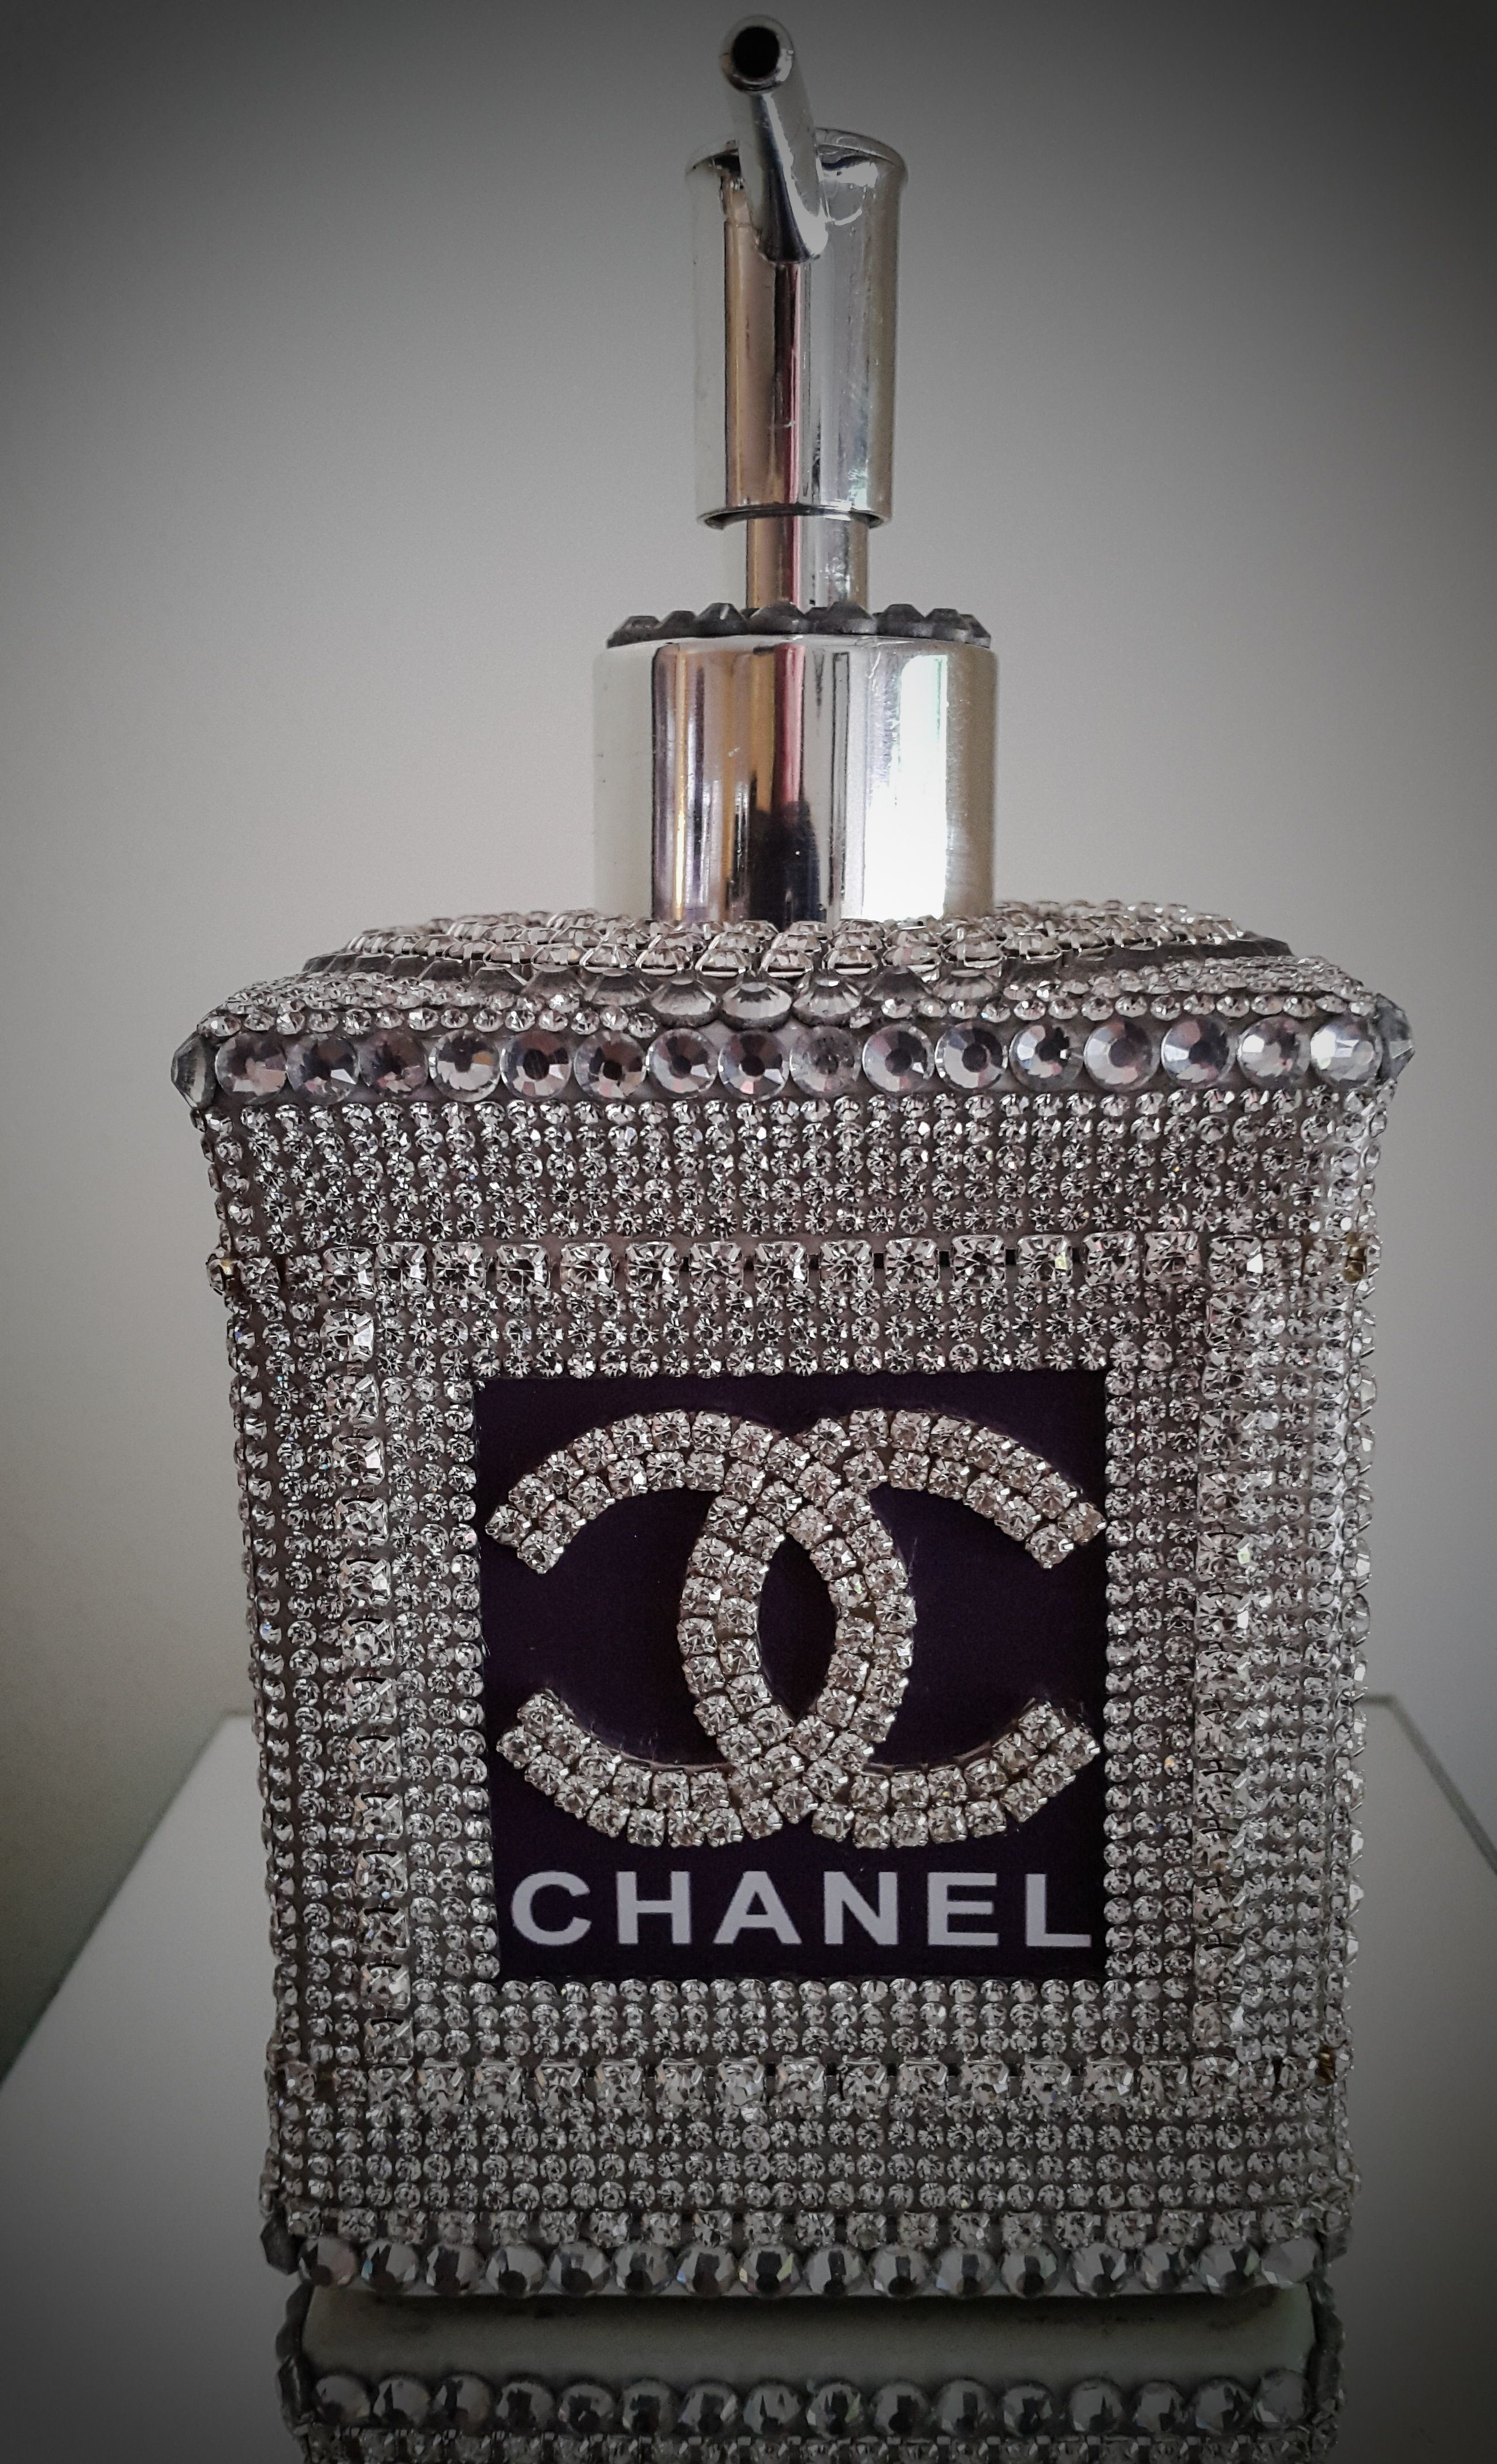 Image Result For Disaronno Chanel Bottle Shaunice